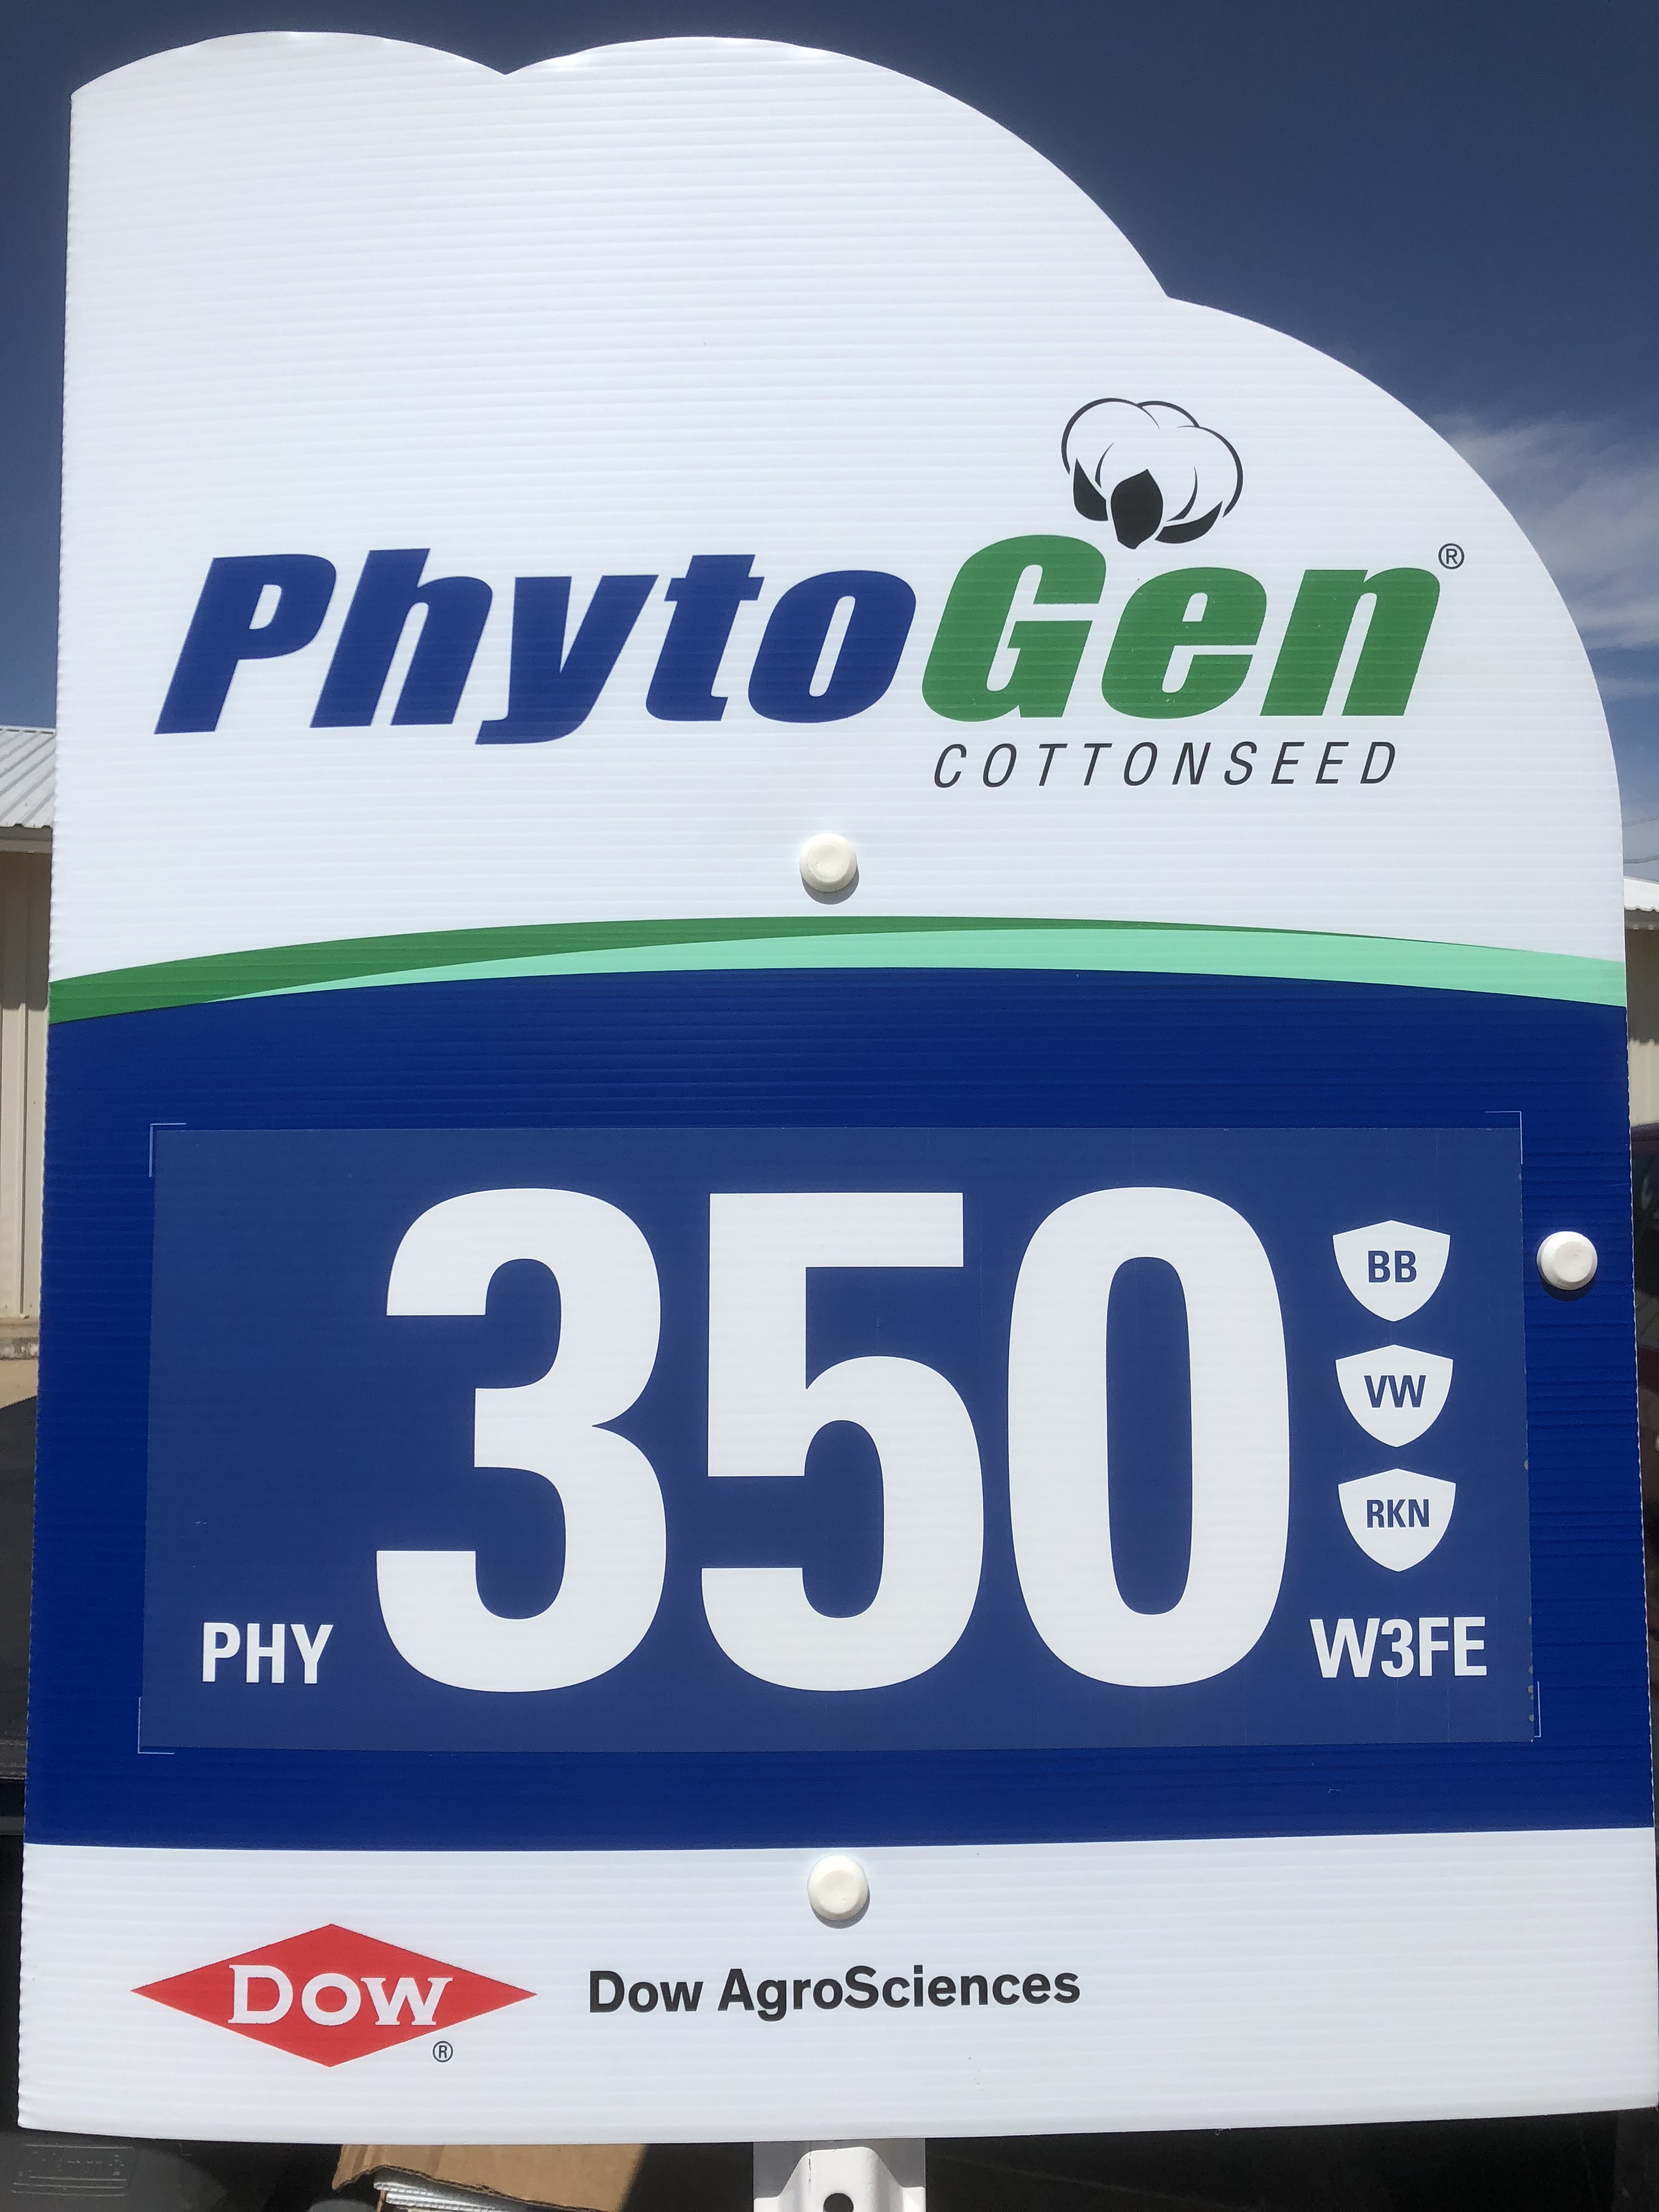 PHY 350 Field Sign